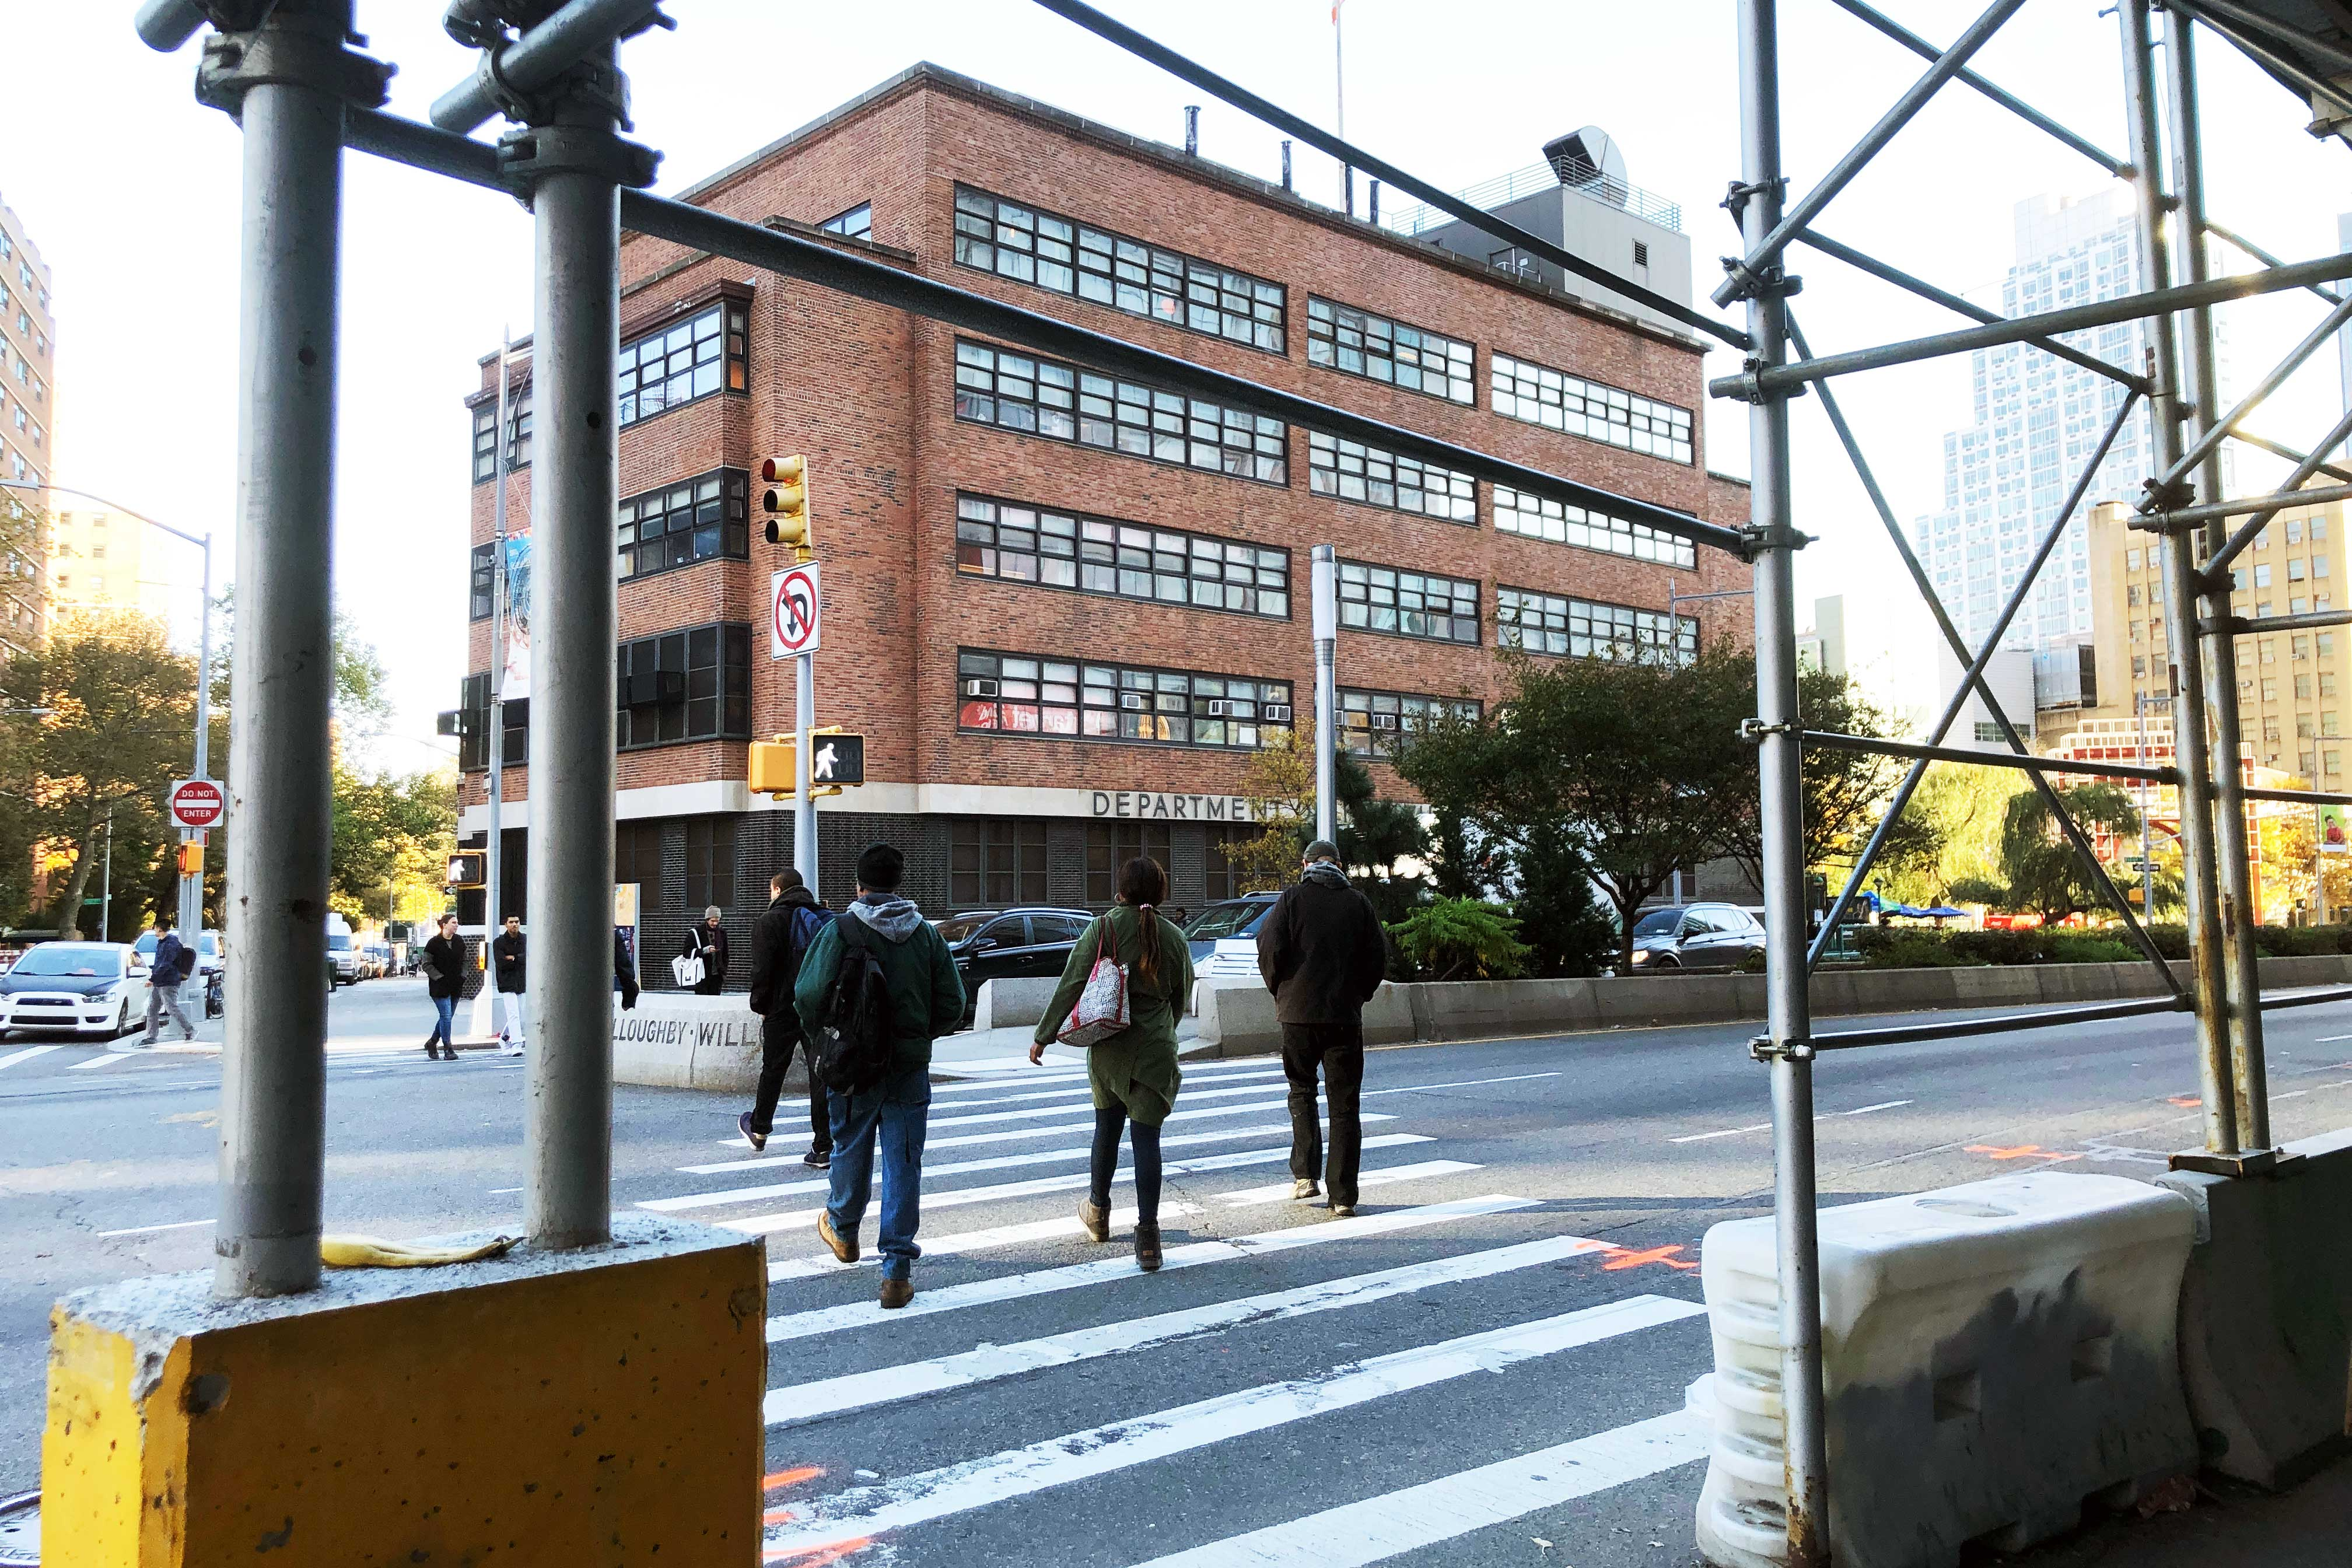 The building housing the Public Health Solutions clinic, with people crossing Flatbush Ave. in front of it.